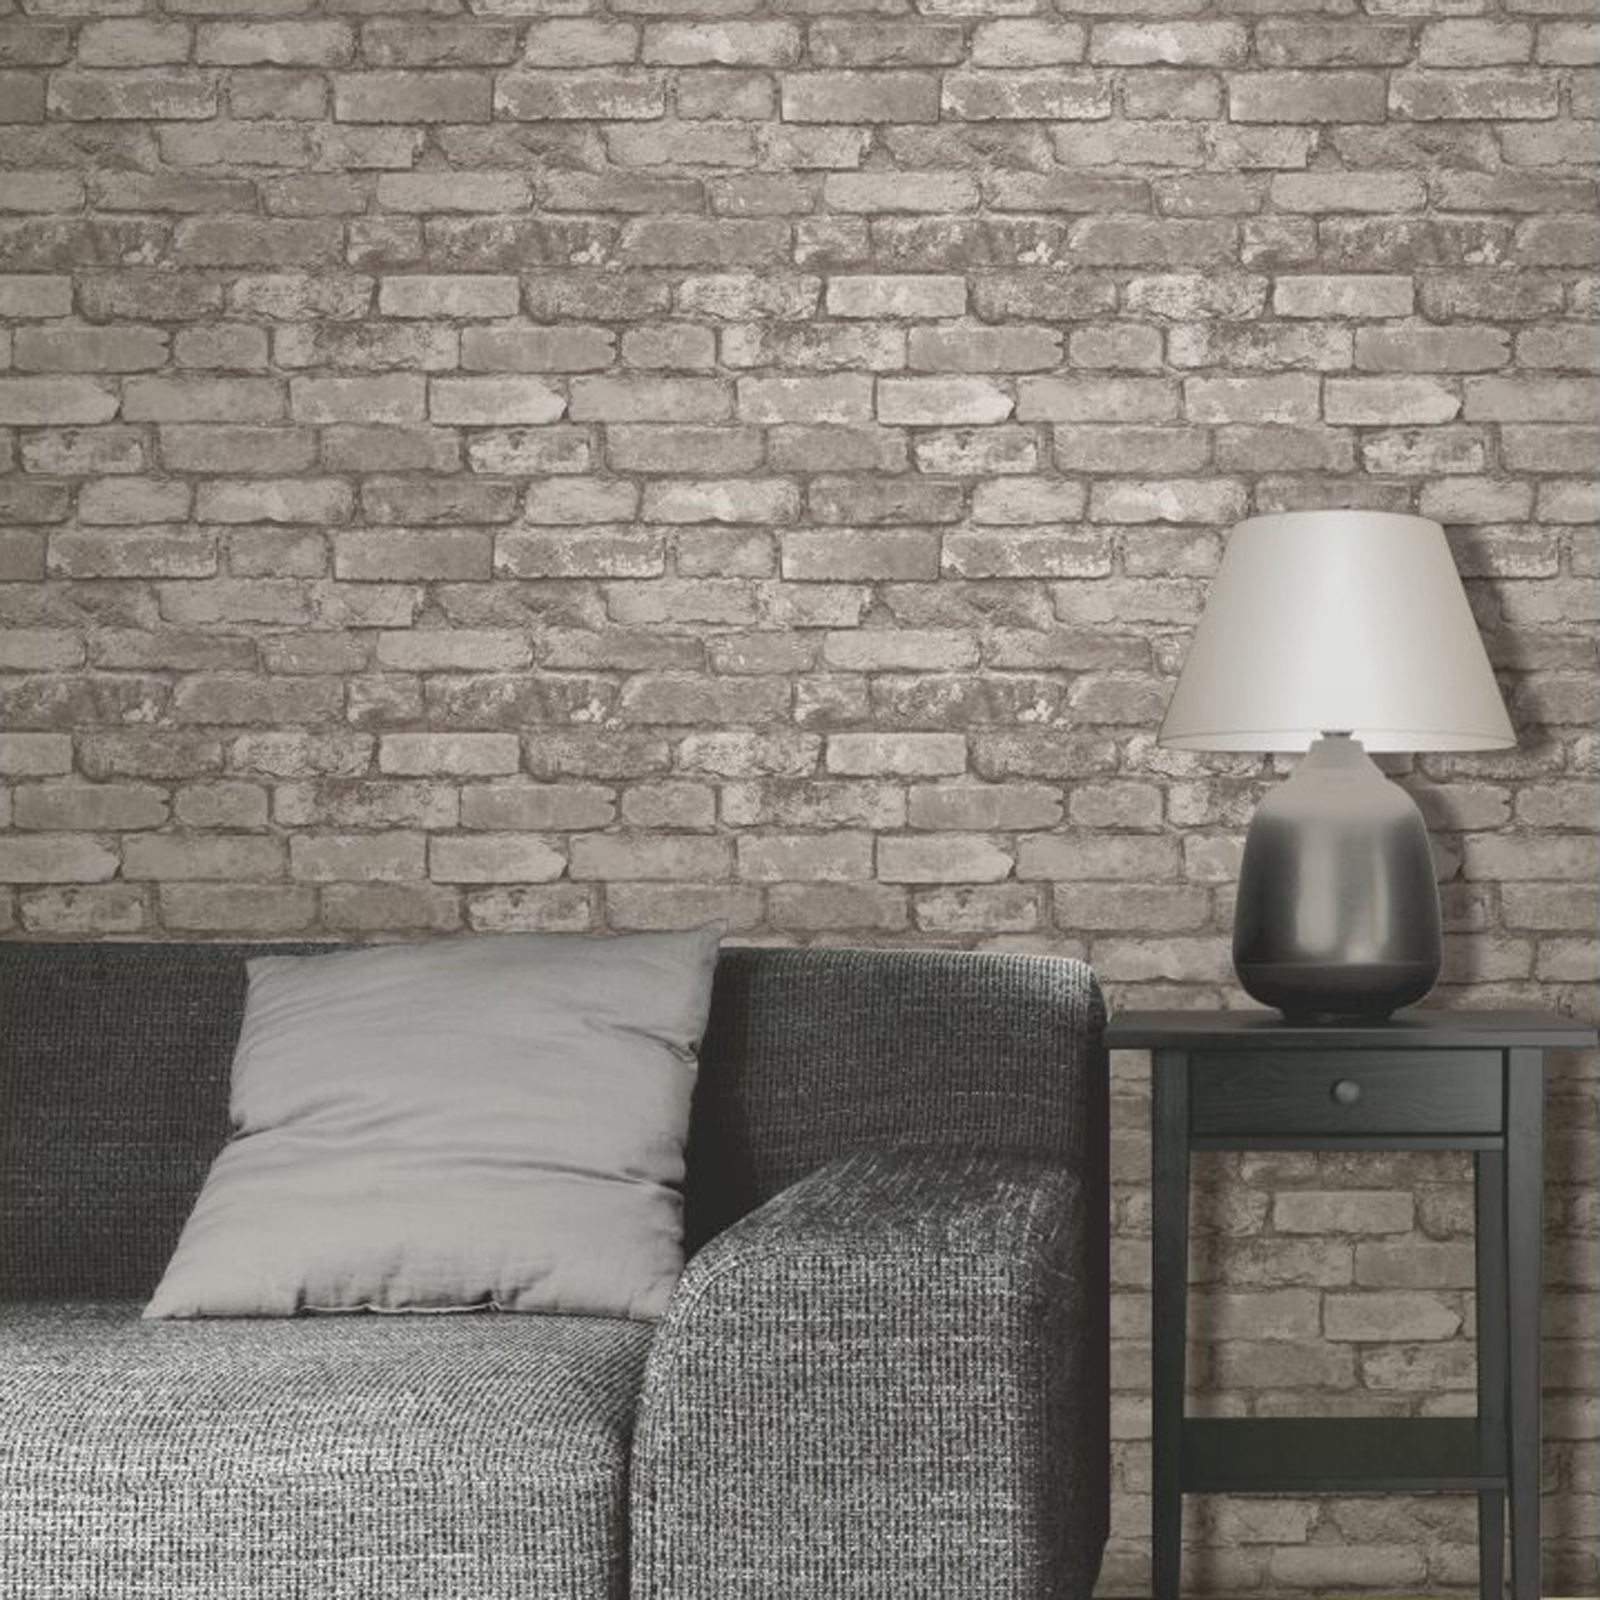 Rustic brick effect wallpaper 10m silver grey new fine for Brick wallpaper bedroom ideas